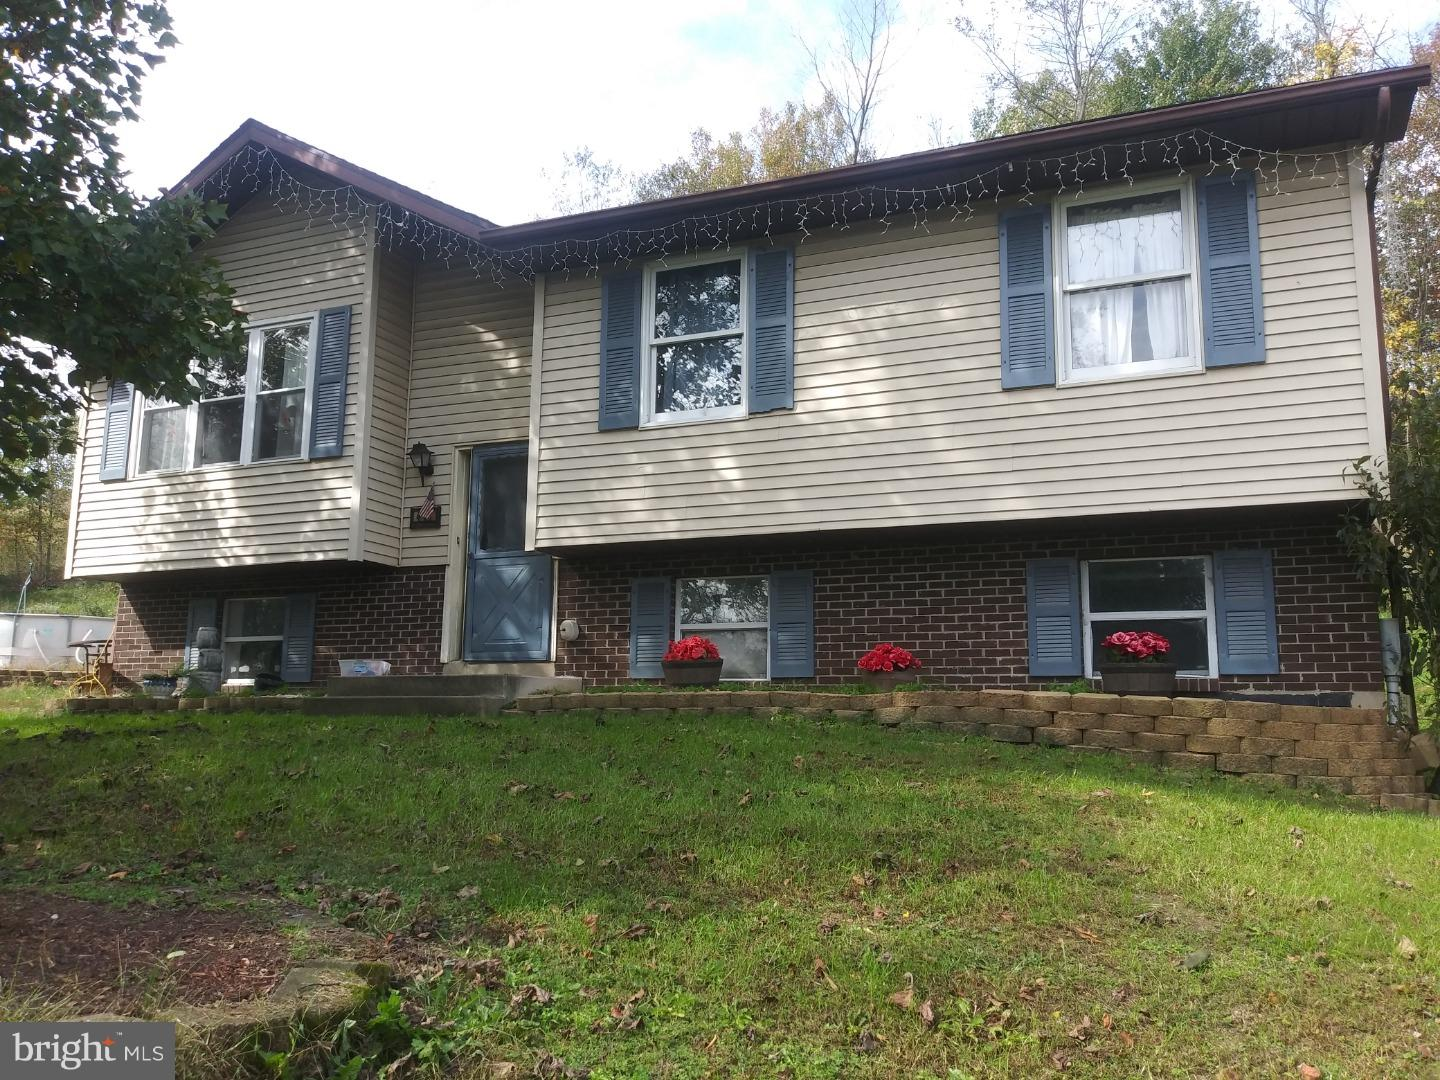 411 GOLF ROAD, TAMAQUA, PA 18252